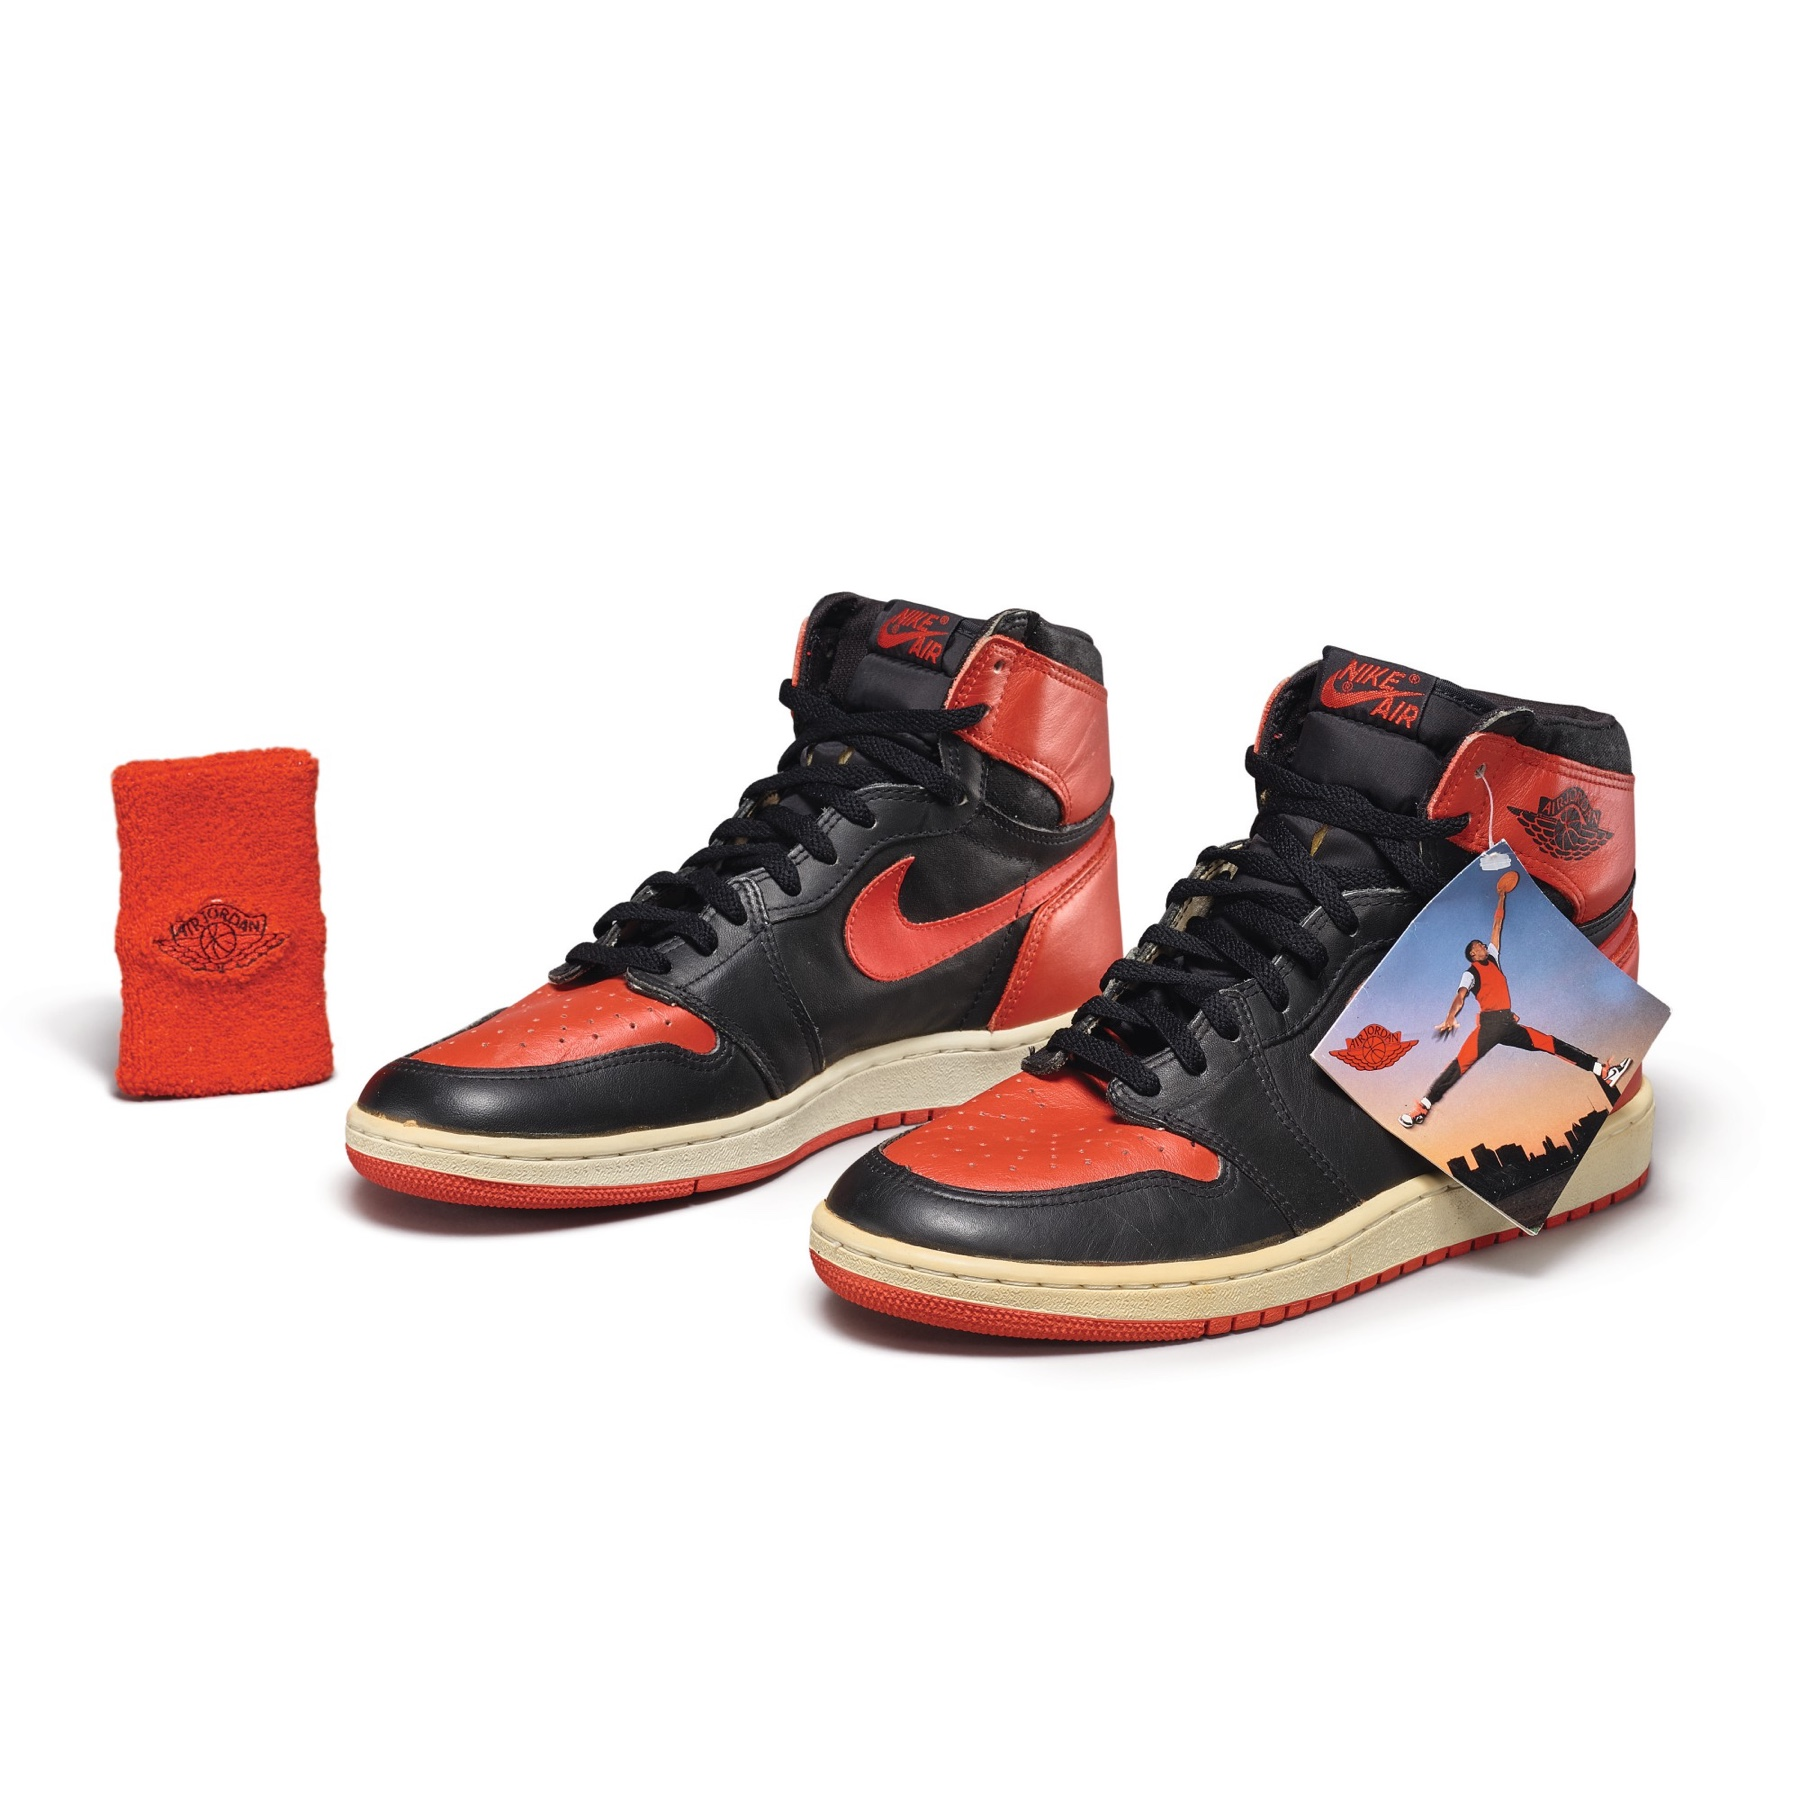 Air Jordan 1 High OG Bred by Peter Moore